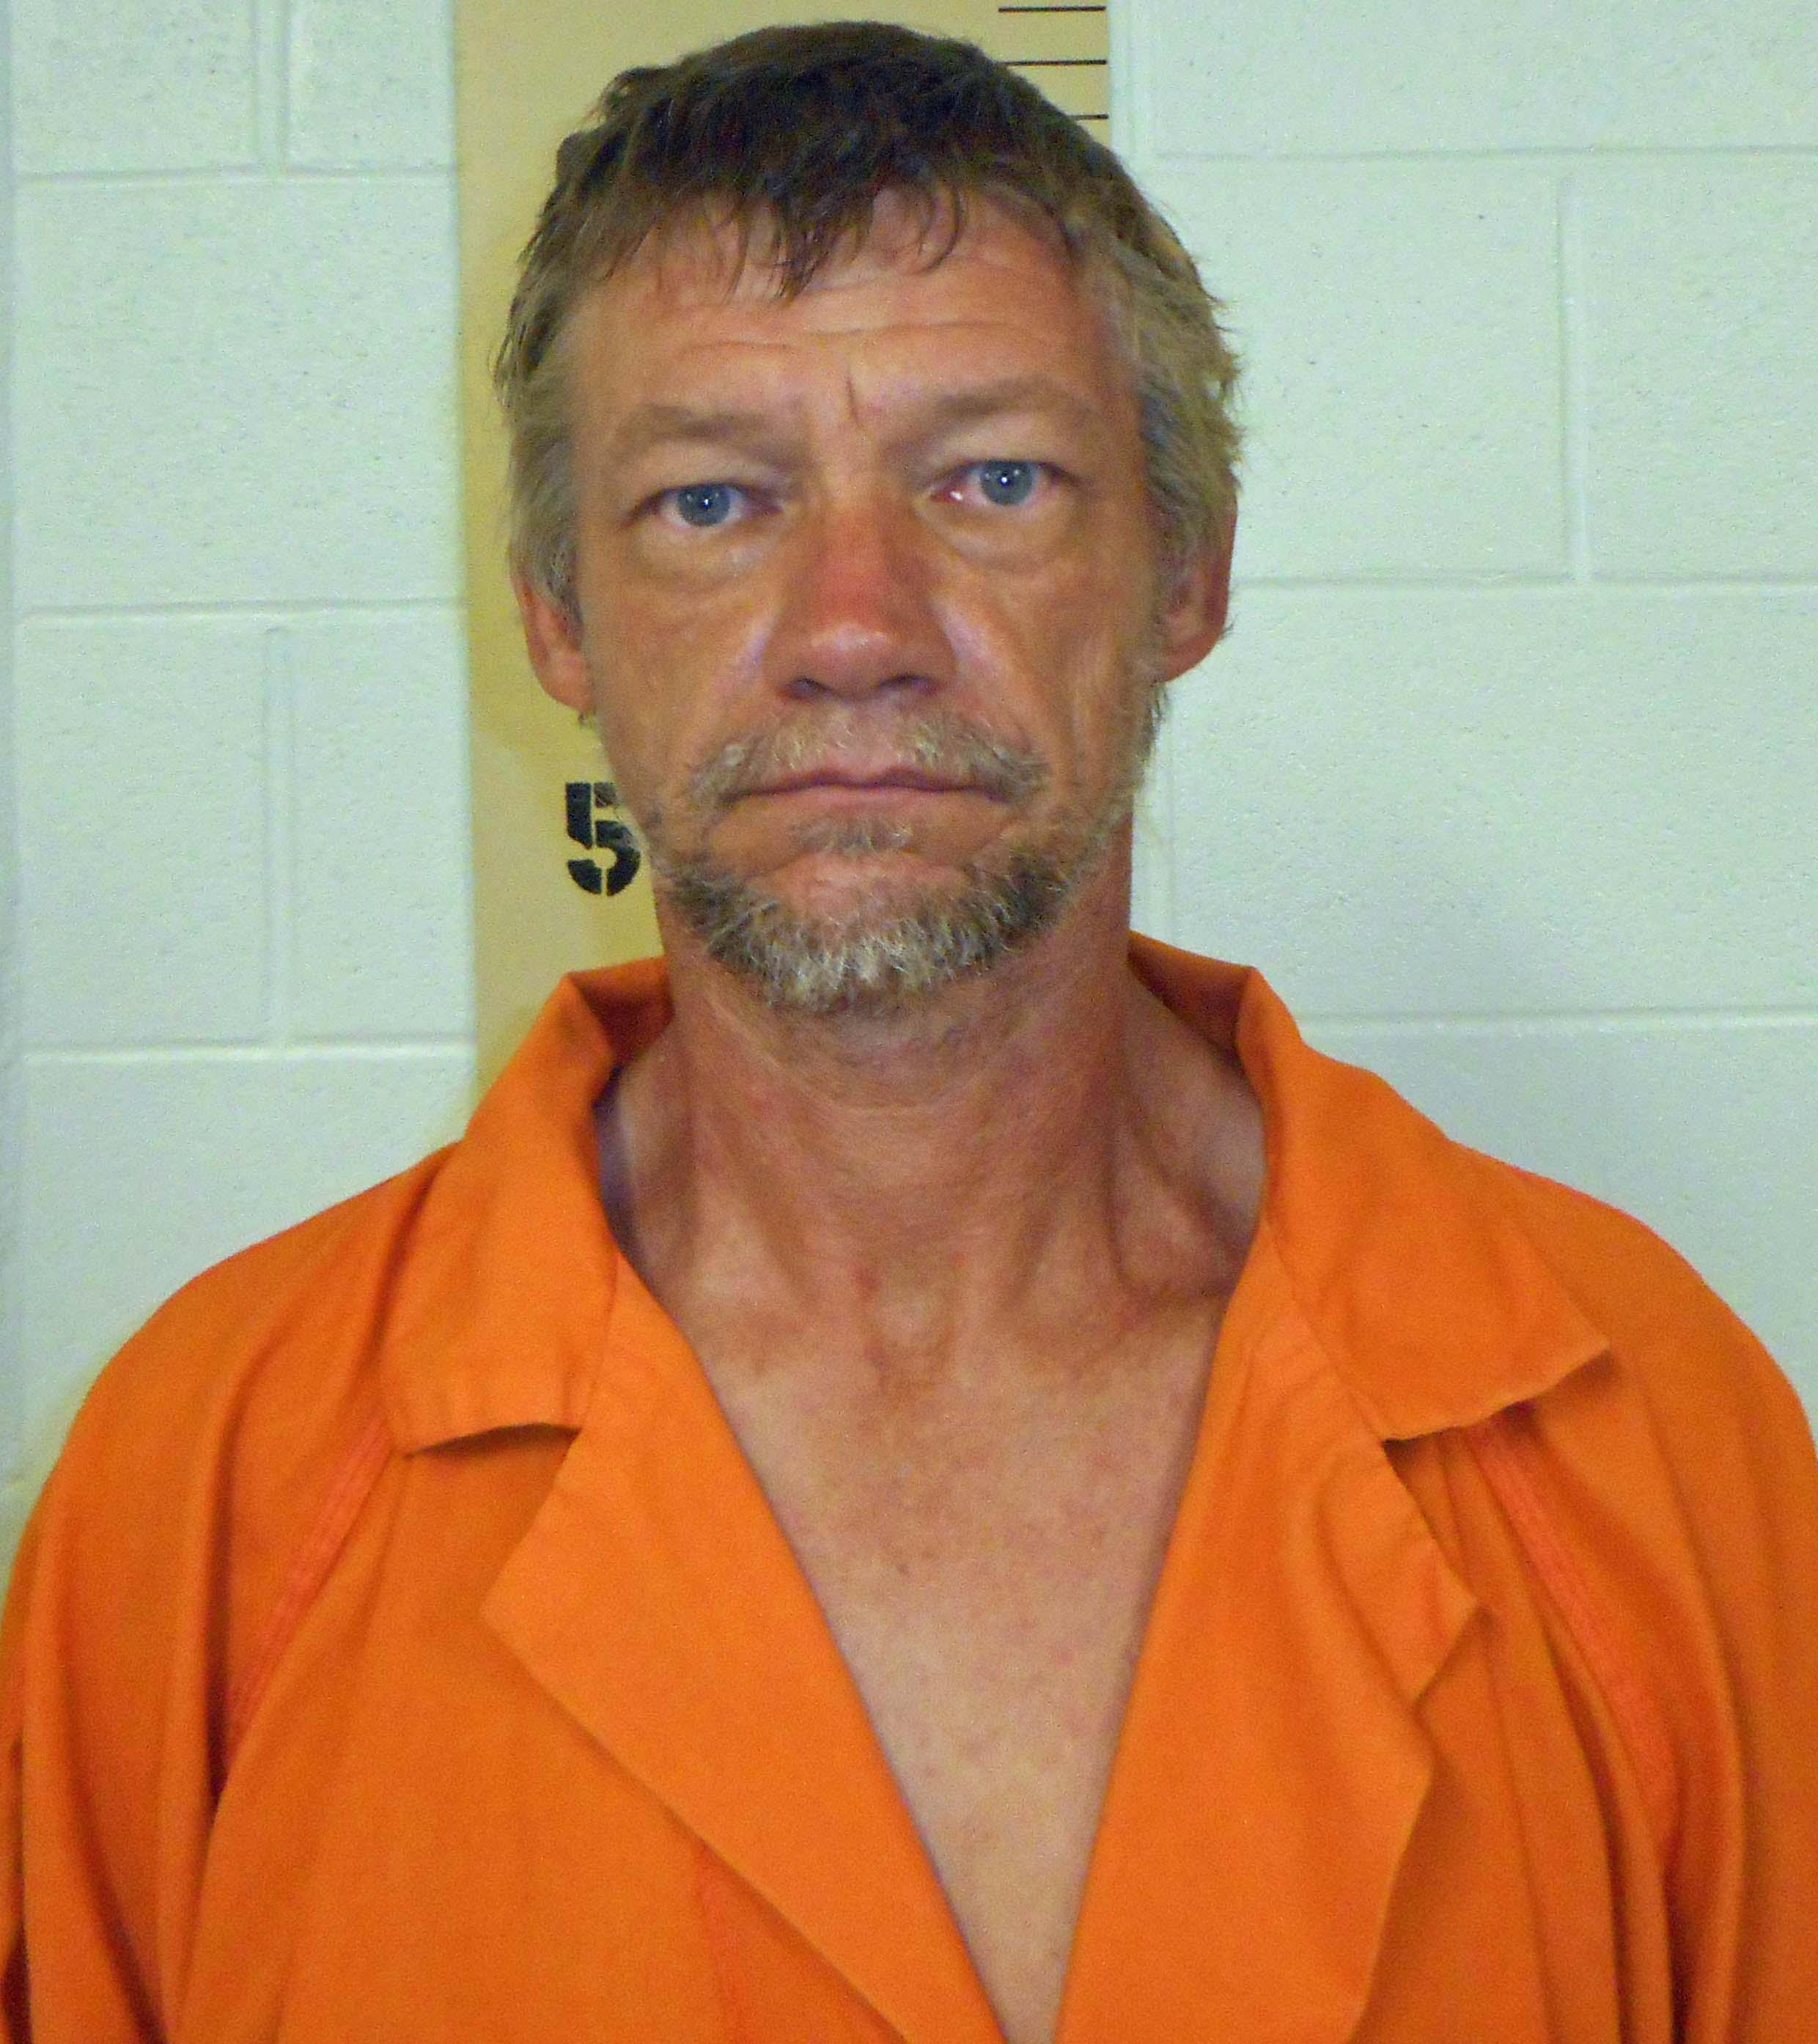 Sean Clopton. (Photo courtesy: Burnet County Sheriff's Office)